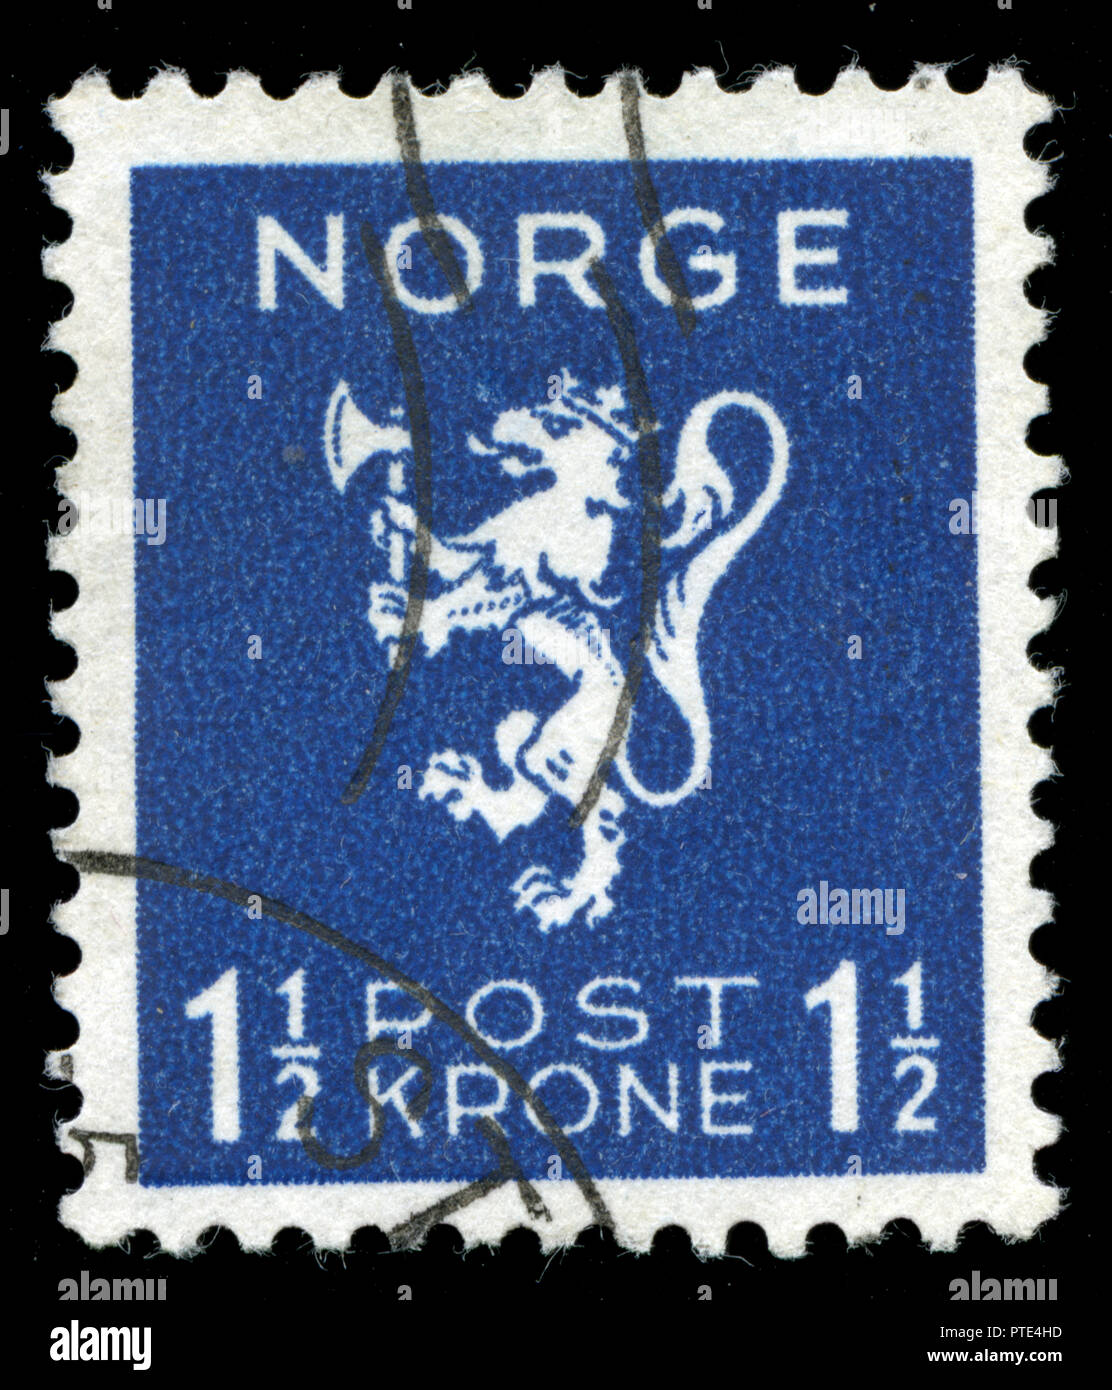 Postmarked stamp from Norway in the Lion type, Crown values series issued in 1940 - Stock Image